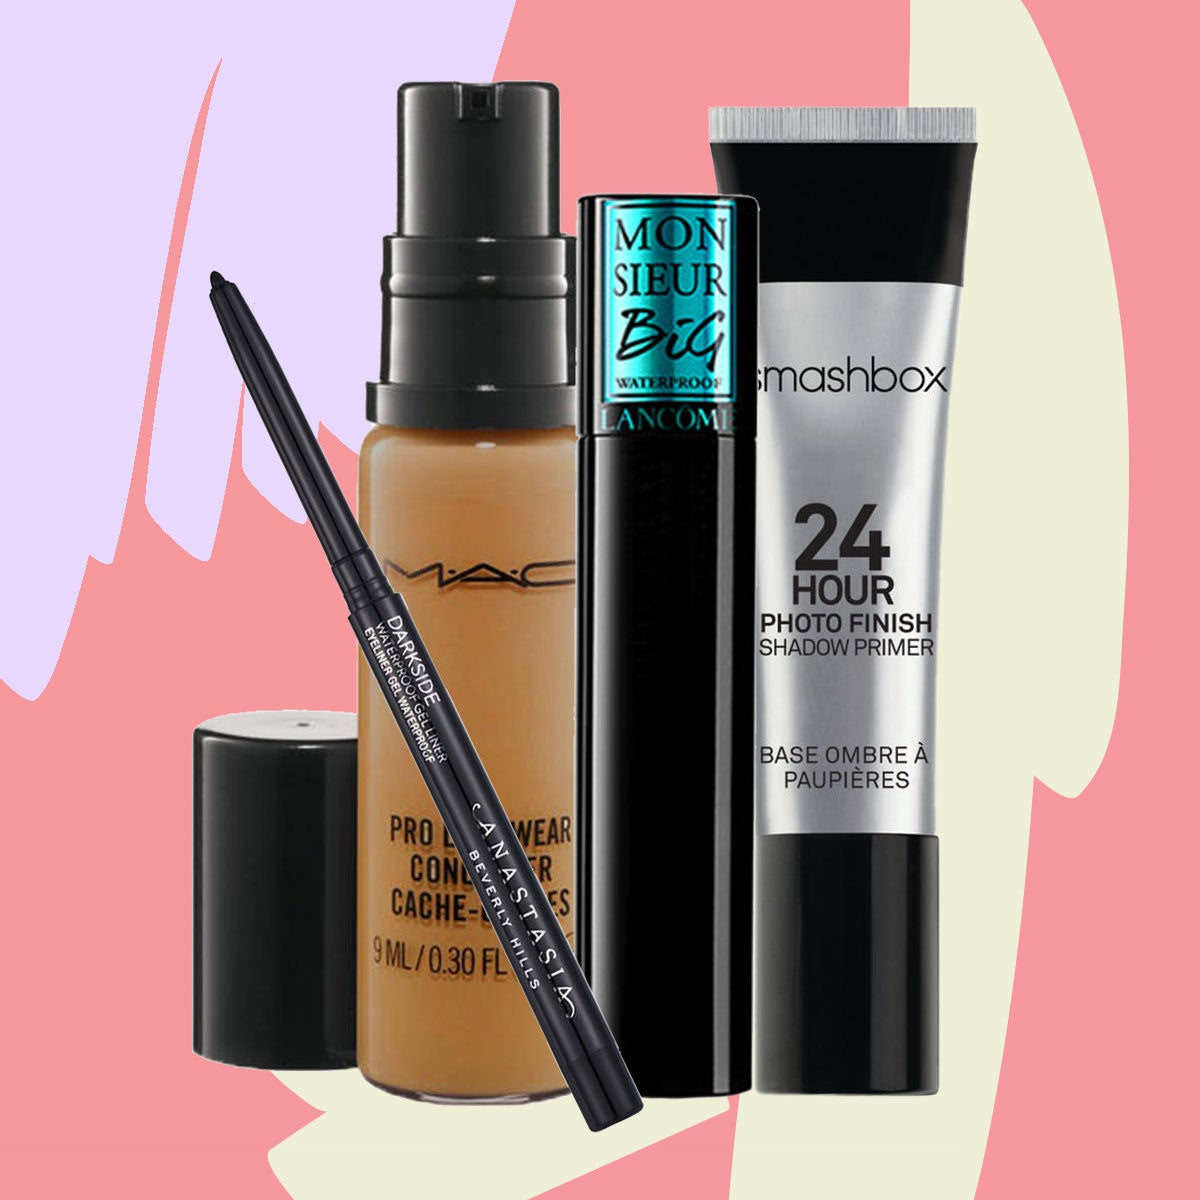 All The Water Proof Beauty Products You Need To Survive The Last Of The Summer Heatwaves